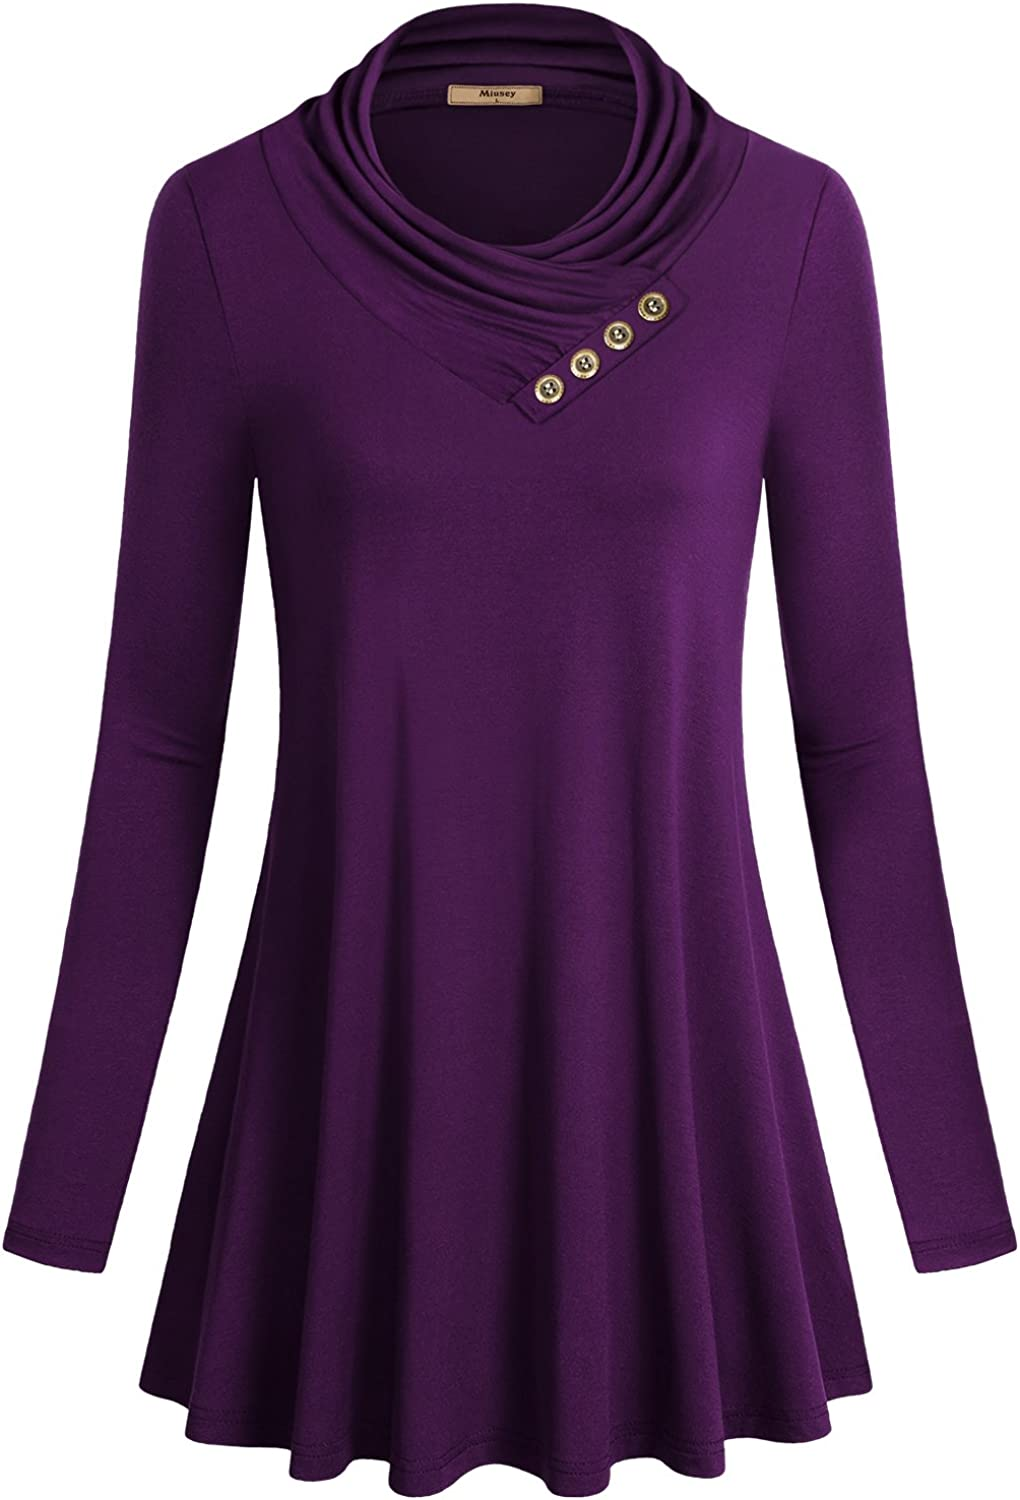 Miusey Women's Long Sleeve Cowl Neck Fitting Free shipping Tunic Casual T Super beauty product restock quality top Form